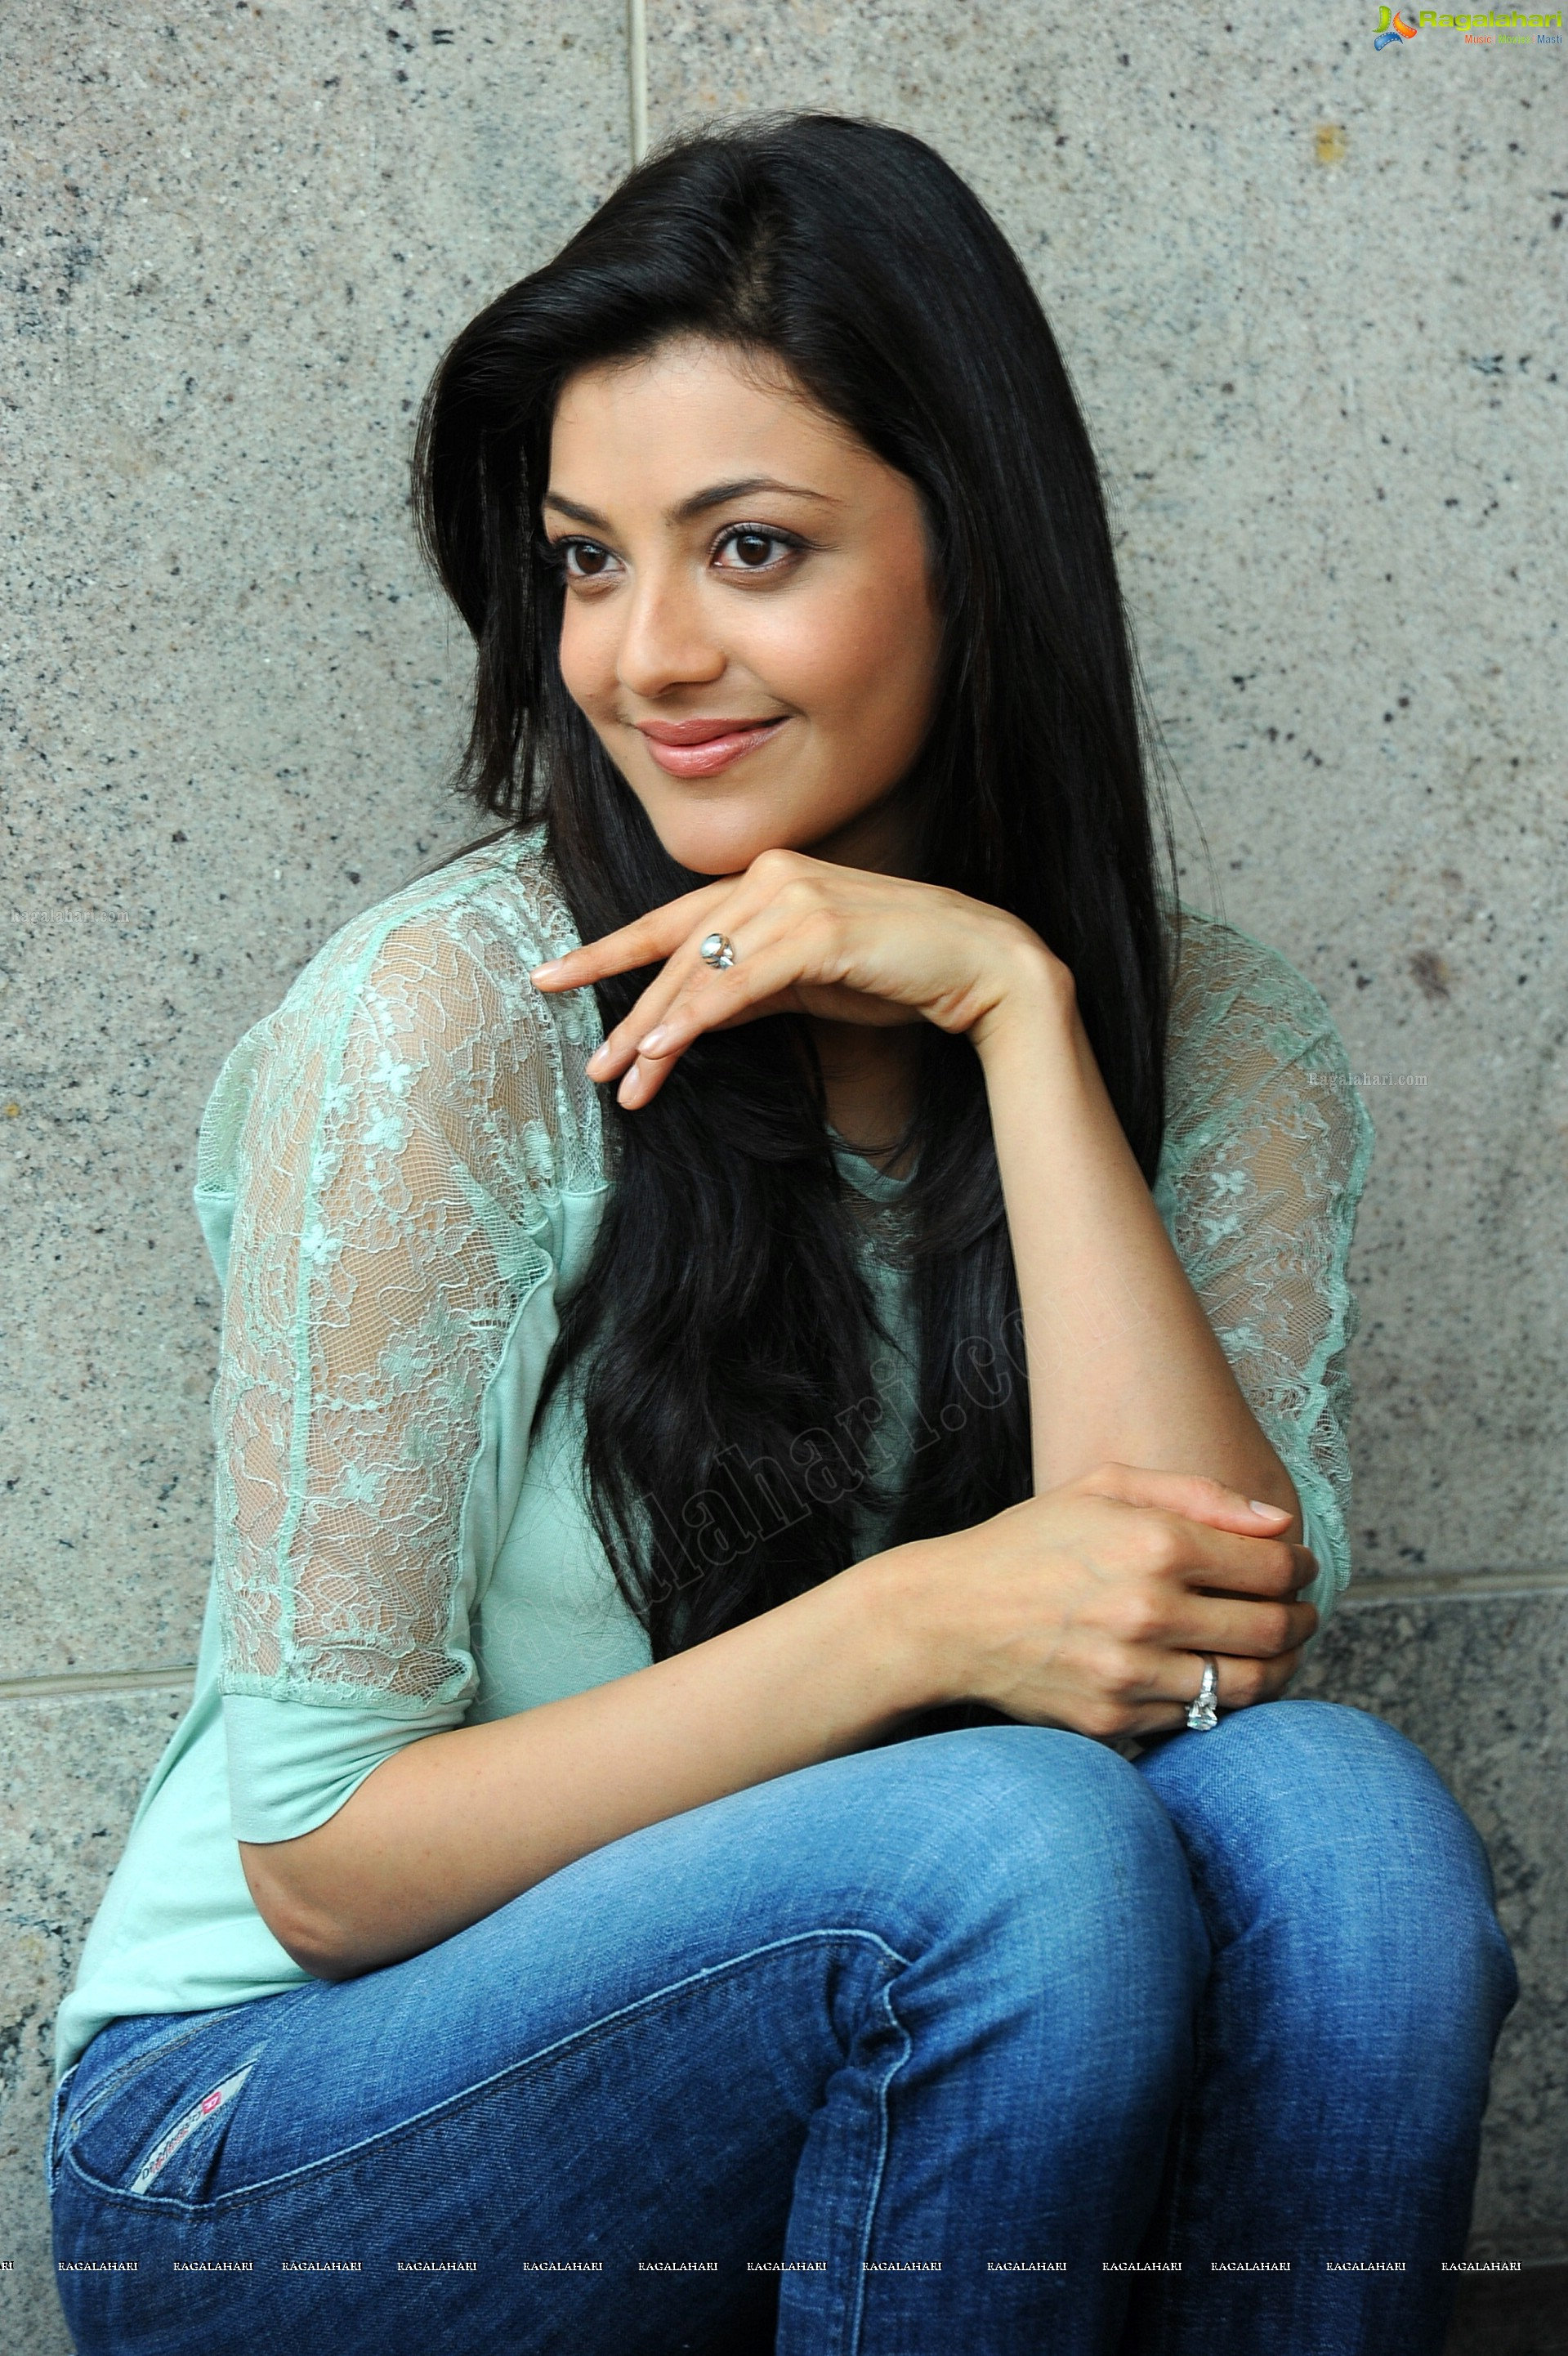 kajal agarwal (hd) image 73 | telugu actress photos,images, photos